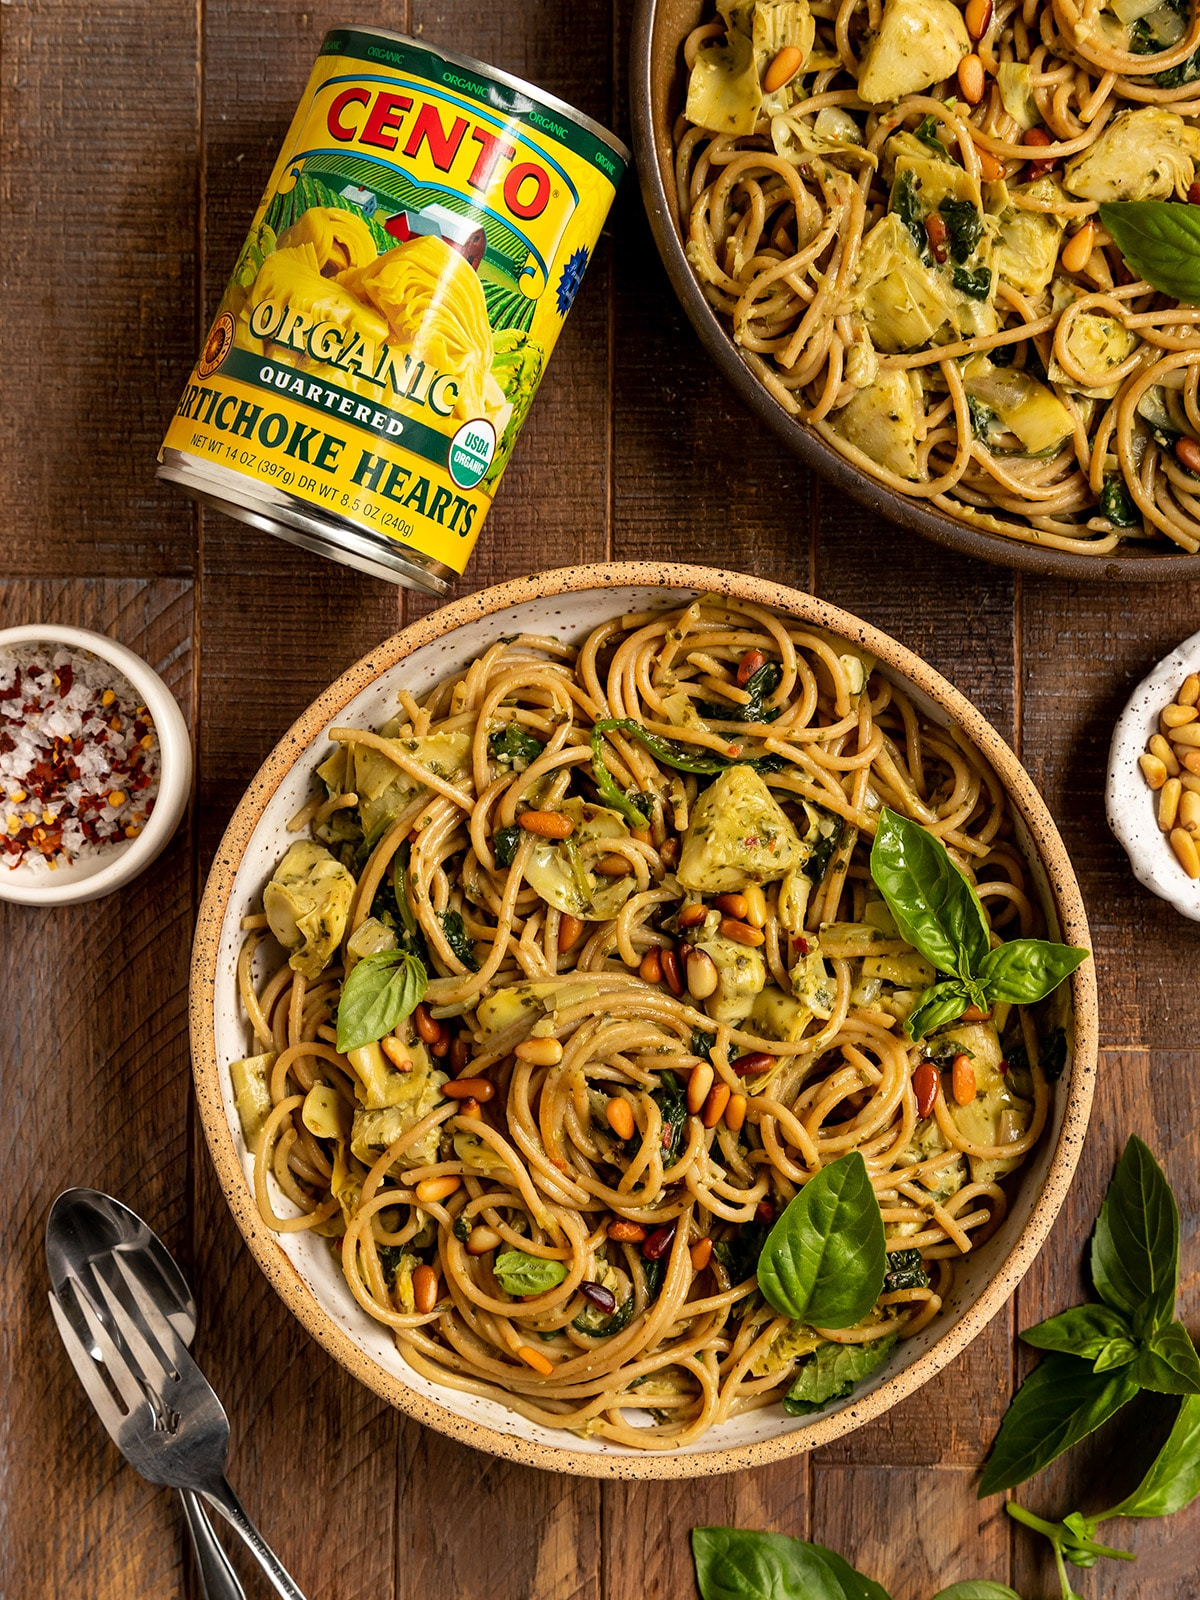 two bowls of linguine with spinach, artichokes, basil, and toasted pine nuts with cento canned artichokes on side